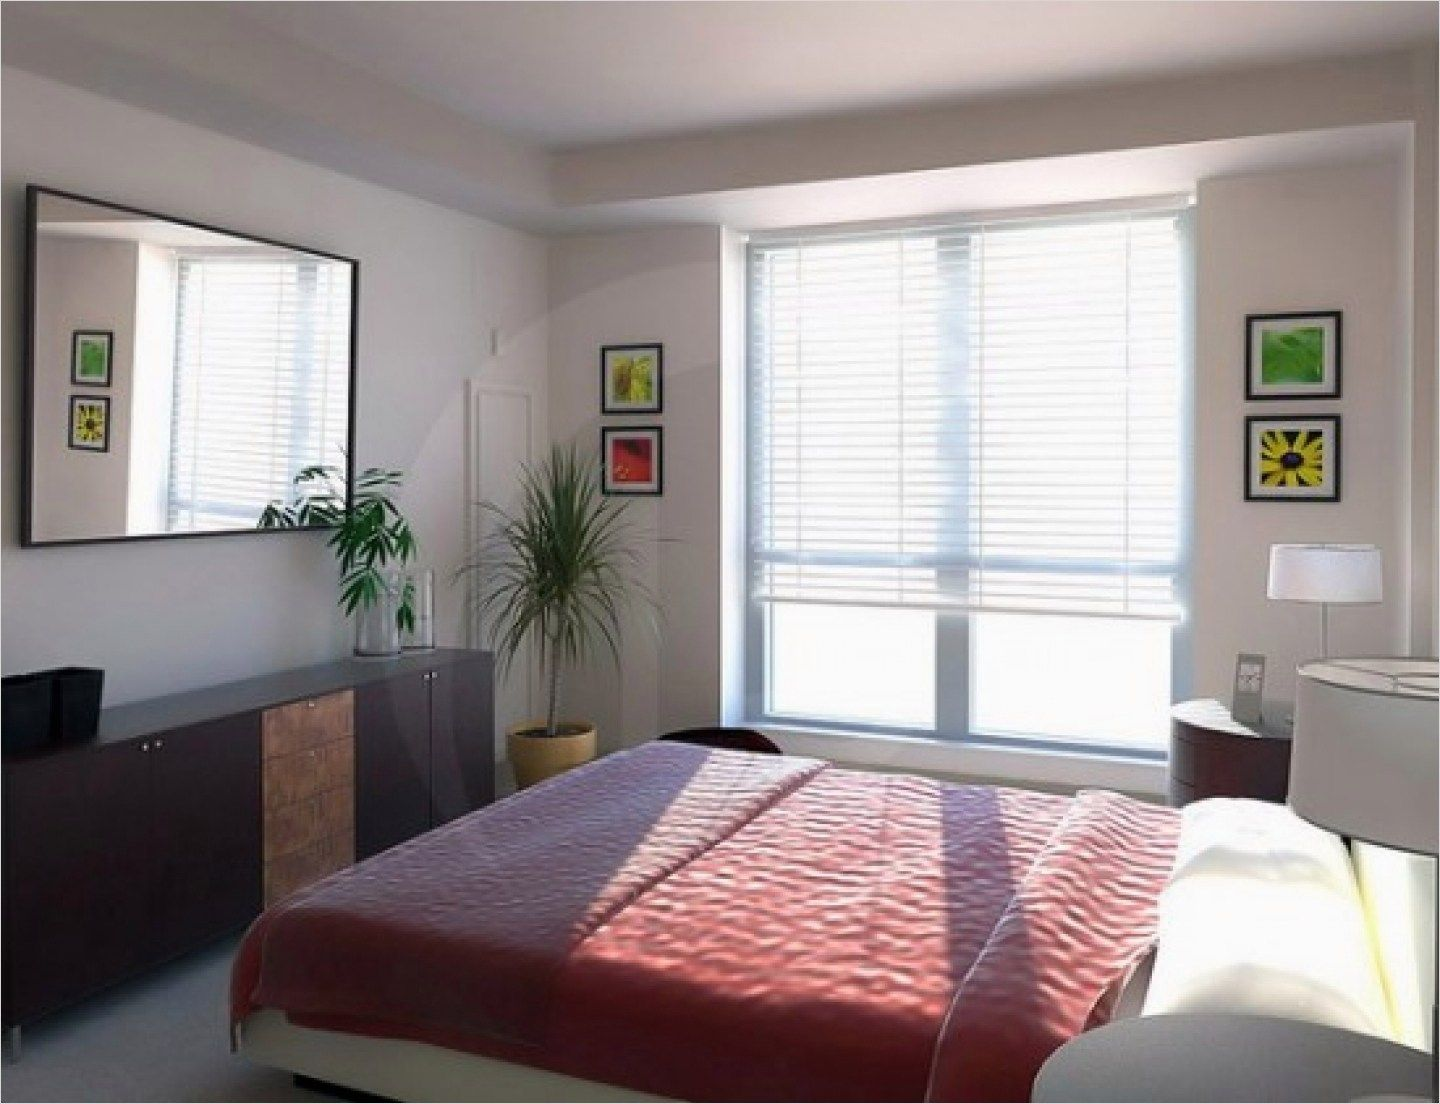 stunning small bedroom decorating ideas on  budget double bedrooms design bud my also rh pinterest